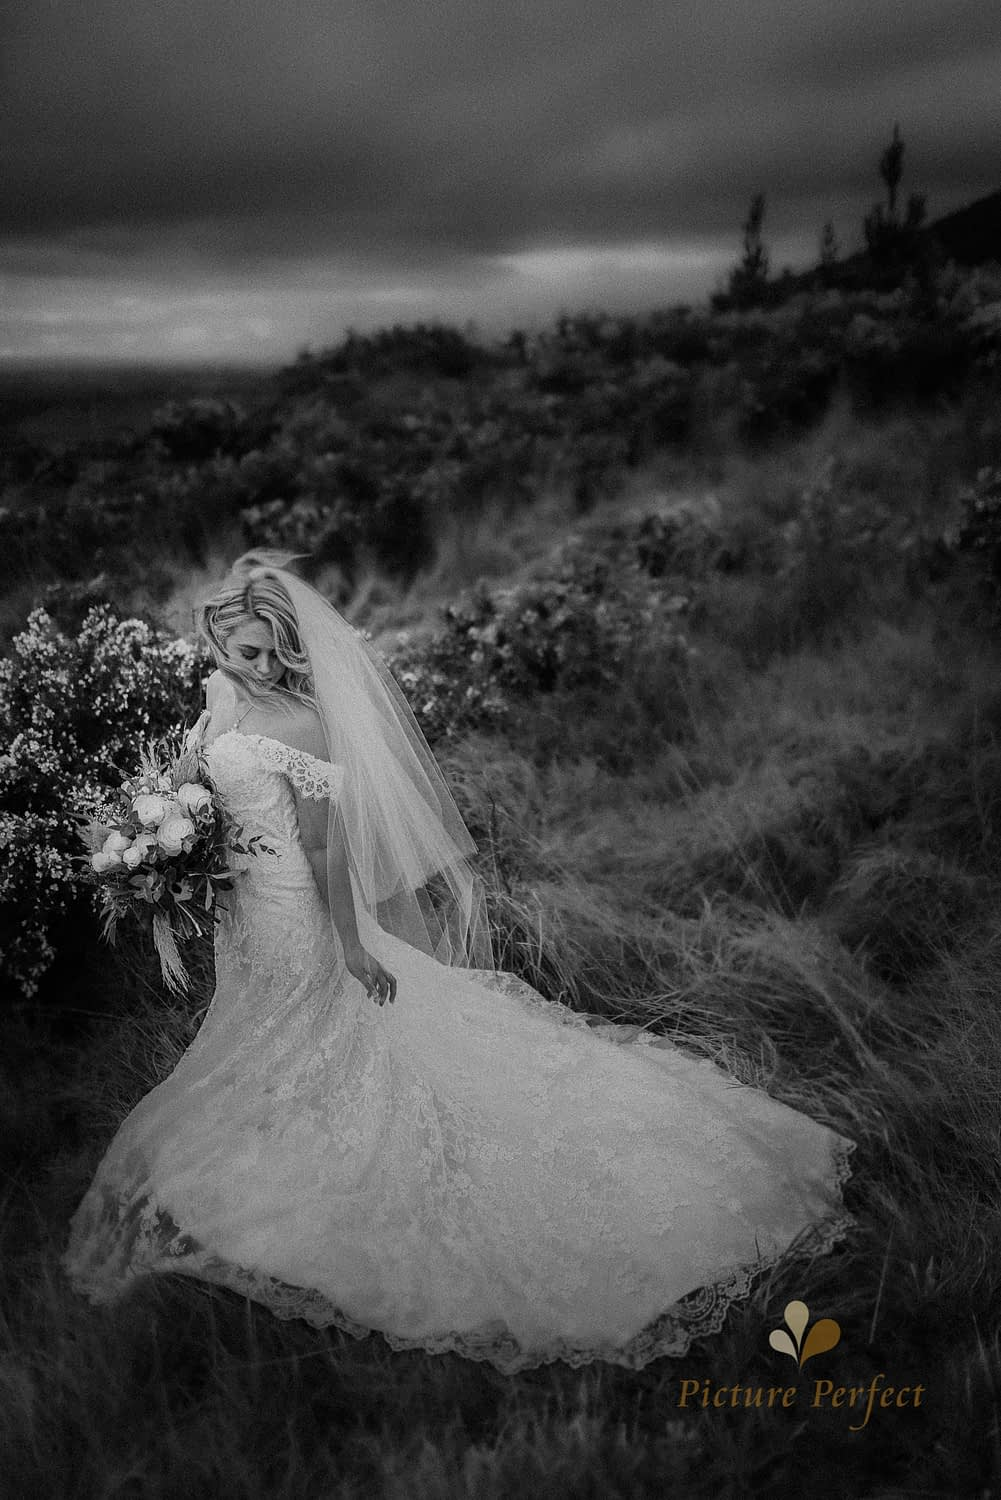 Stunning black and white classic wedding portrait of a bride in a field